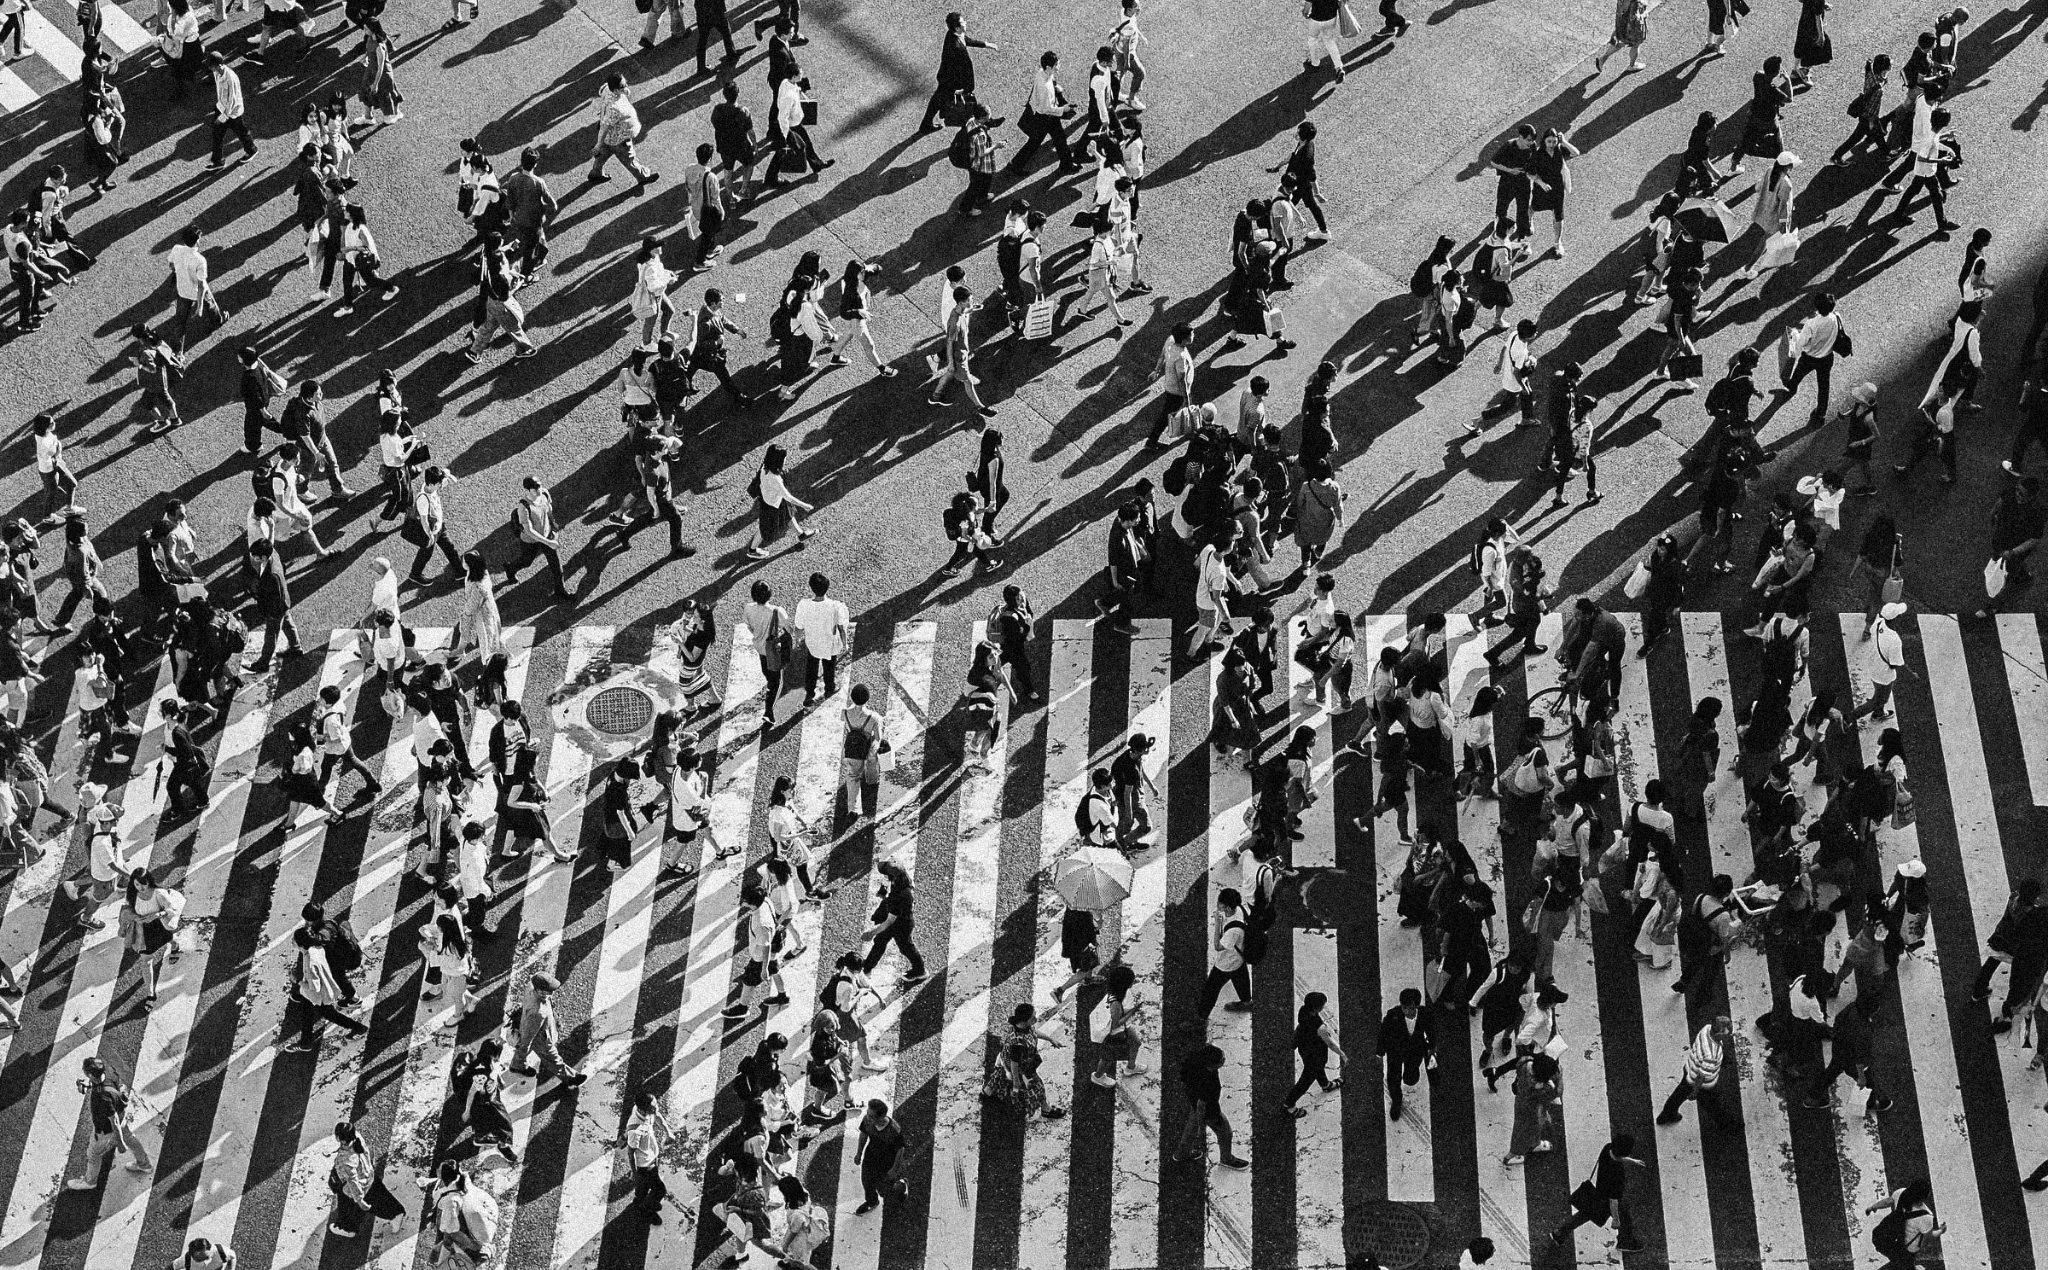 black and white photo of a street in tokyo Jaywalking laws are a stark reminder that many urban spaces are designed primarily for motorized (and non-human) vehicles. Pictured here is the Shibuya Crossing in Tokyo.